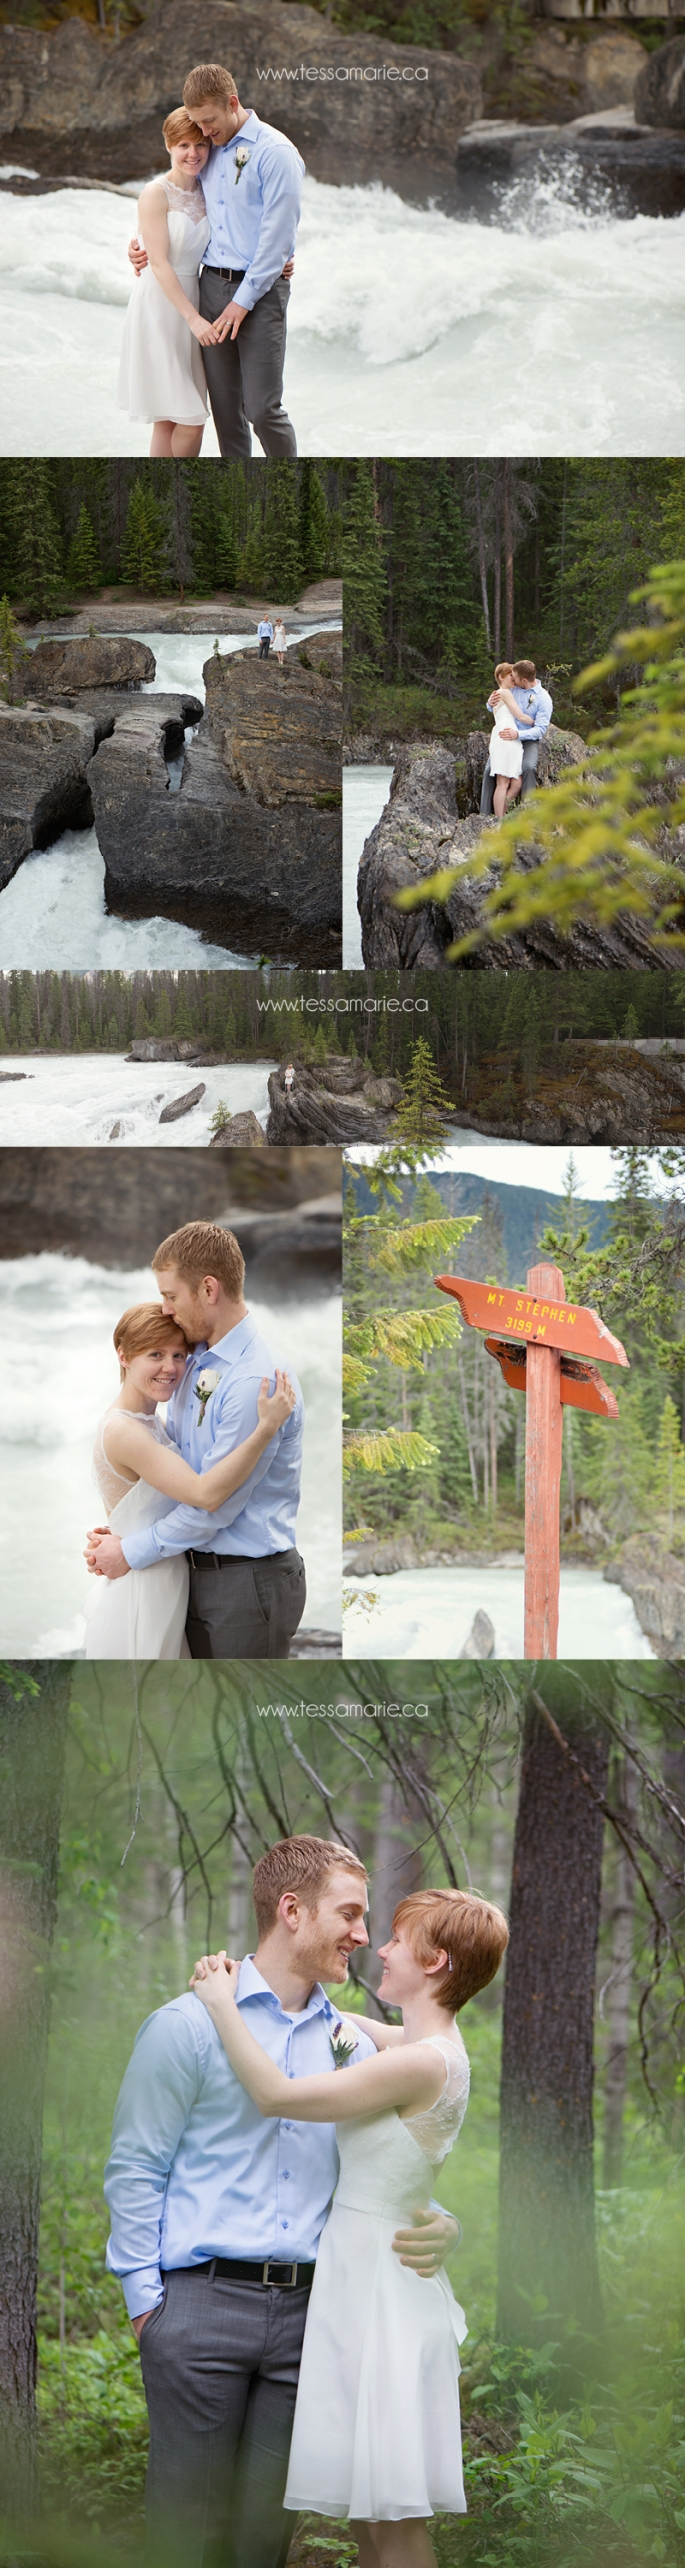 Let's elope in the mountains www.tessamarie.ca